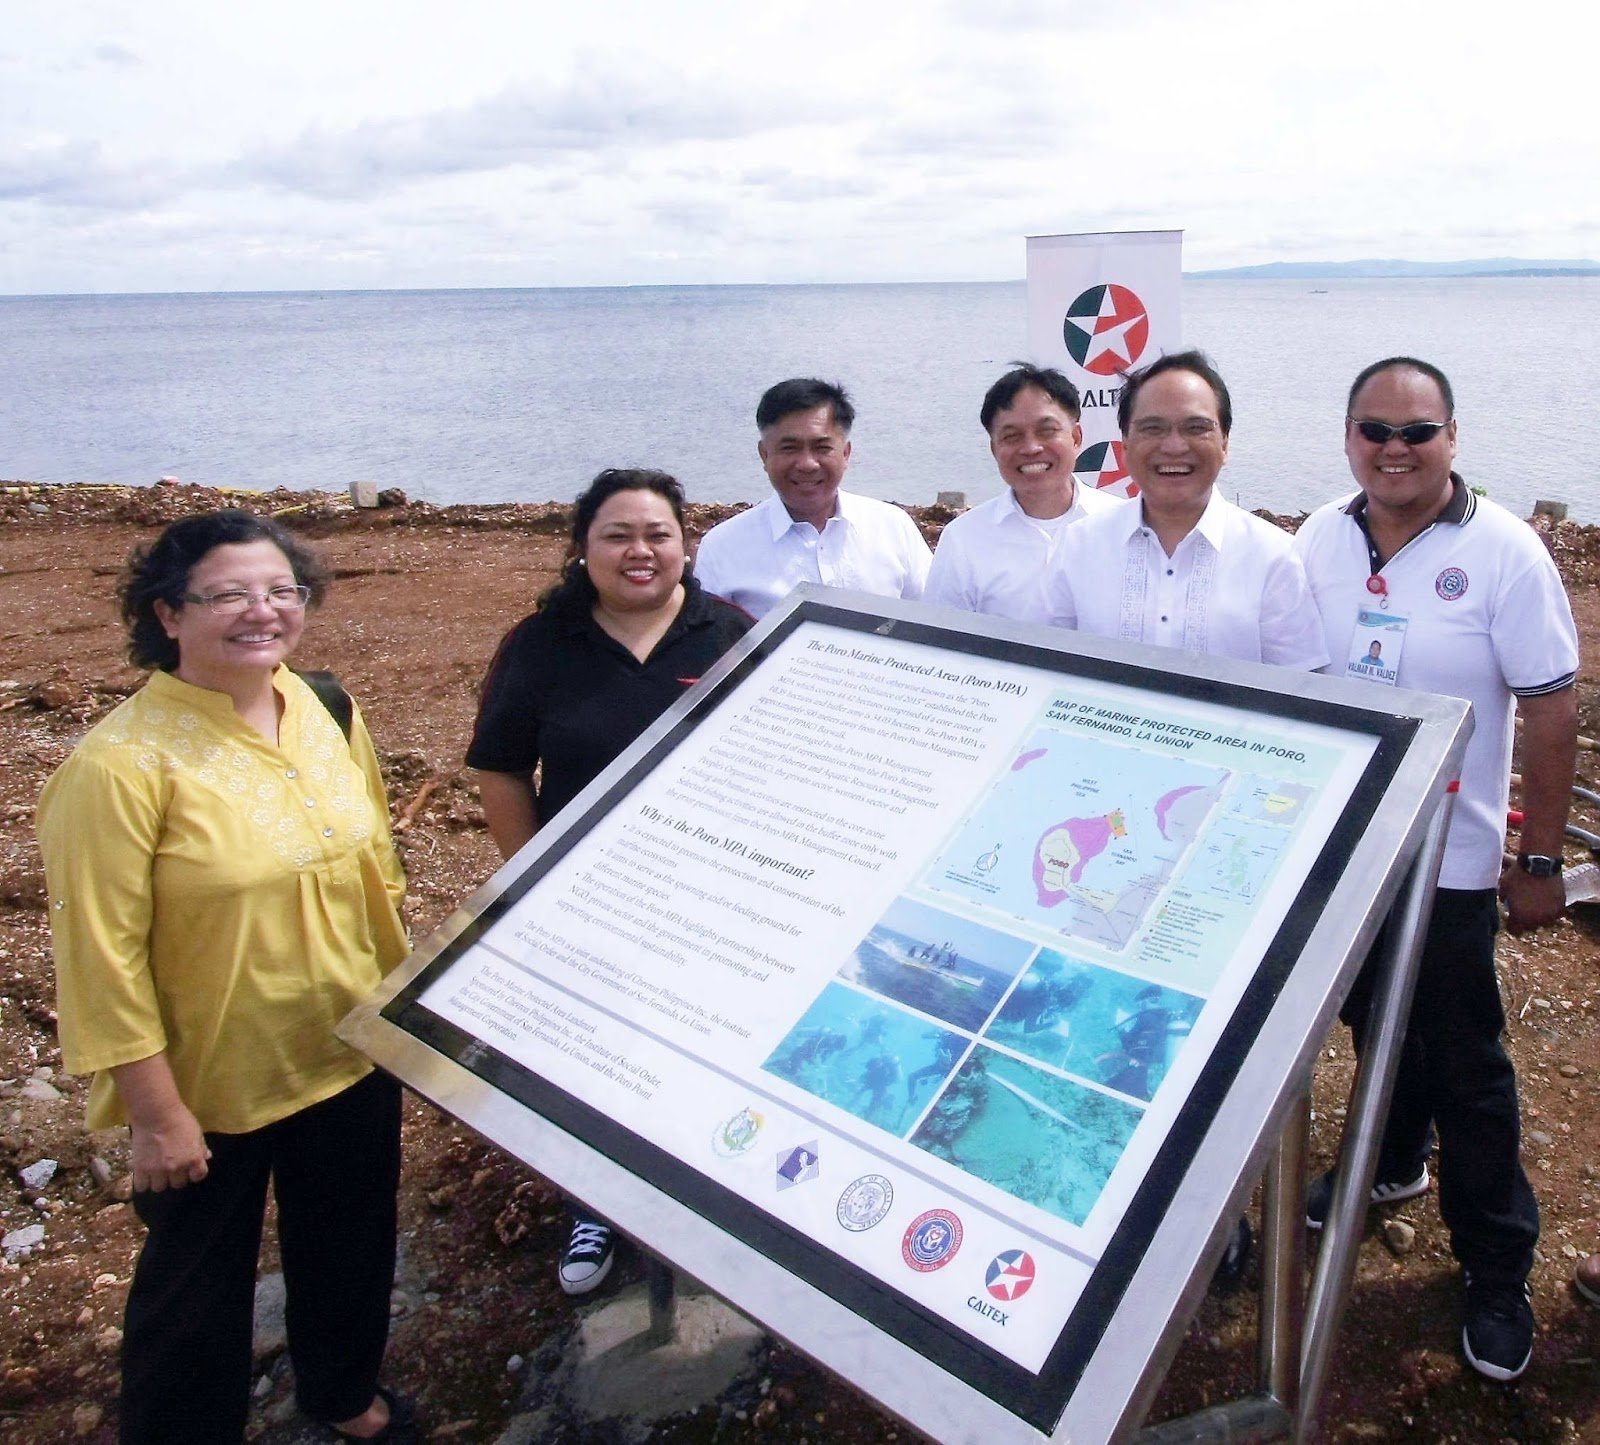 Caltex Poro Marine Protected Area marker unveiled